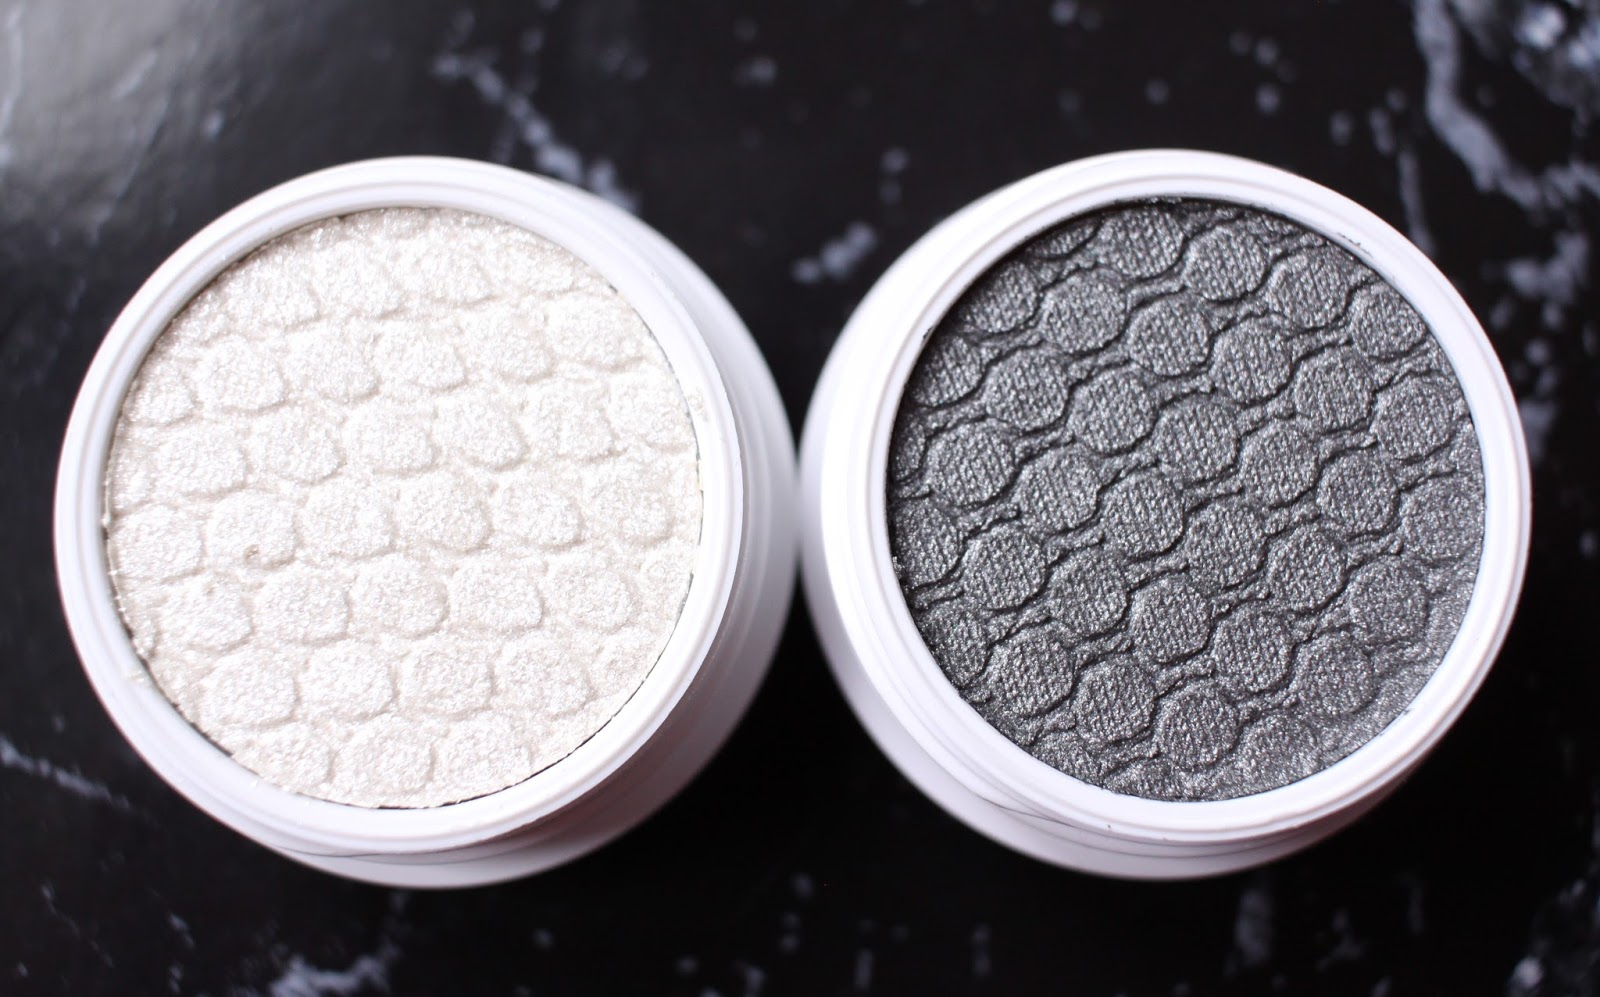 kittyramblesalot hello kitty wedding ring Both of these super shock shadow shades are no longer available and were part of their really fun Hello Kitty collaboration The white shade is Rainbow